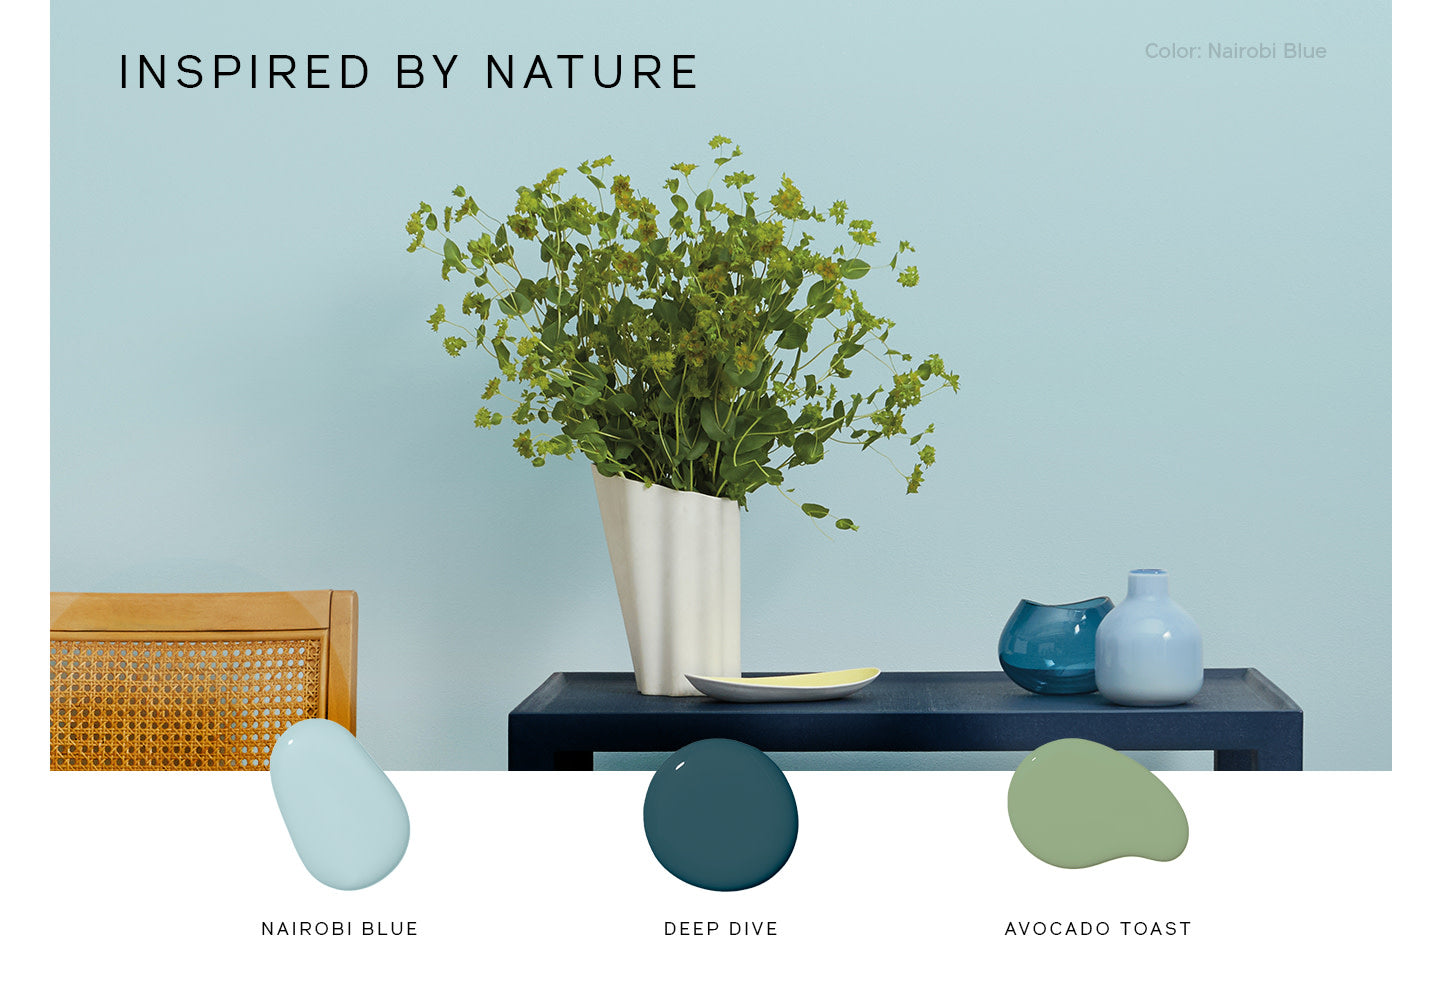 Look to nature to help determine what paint schemes and colors look good together.